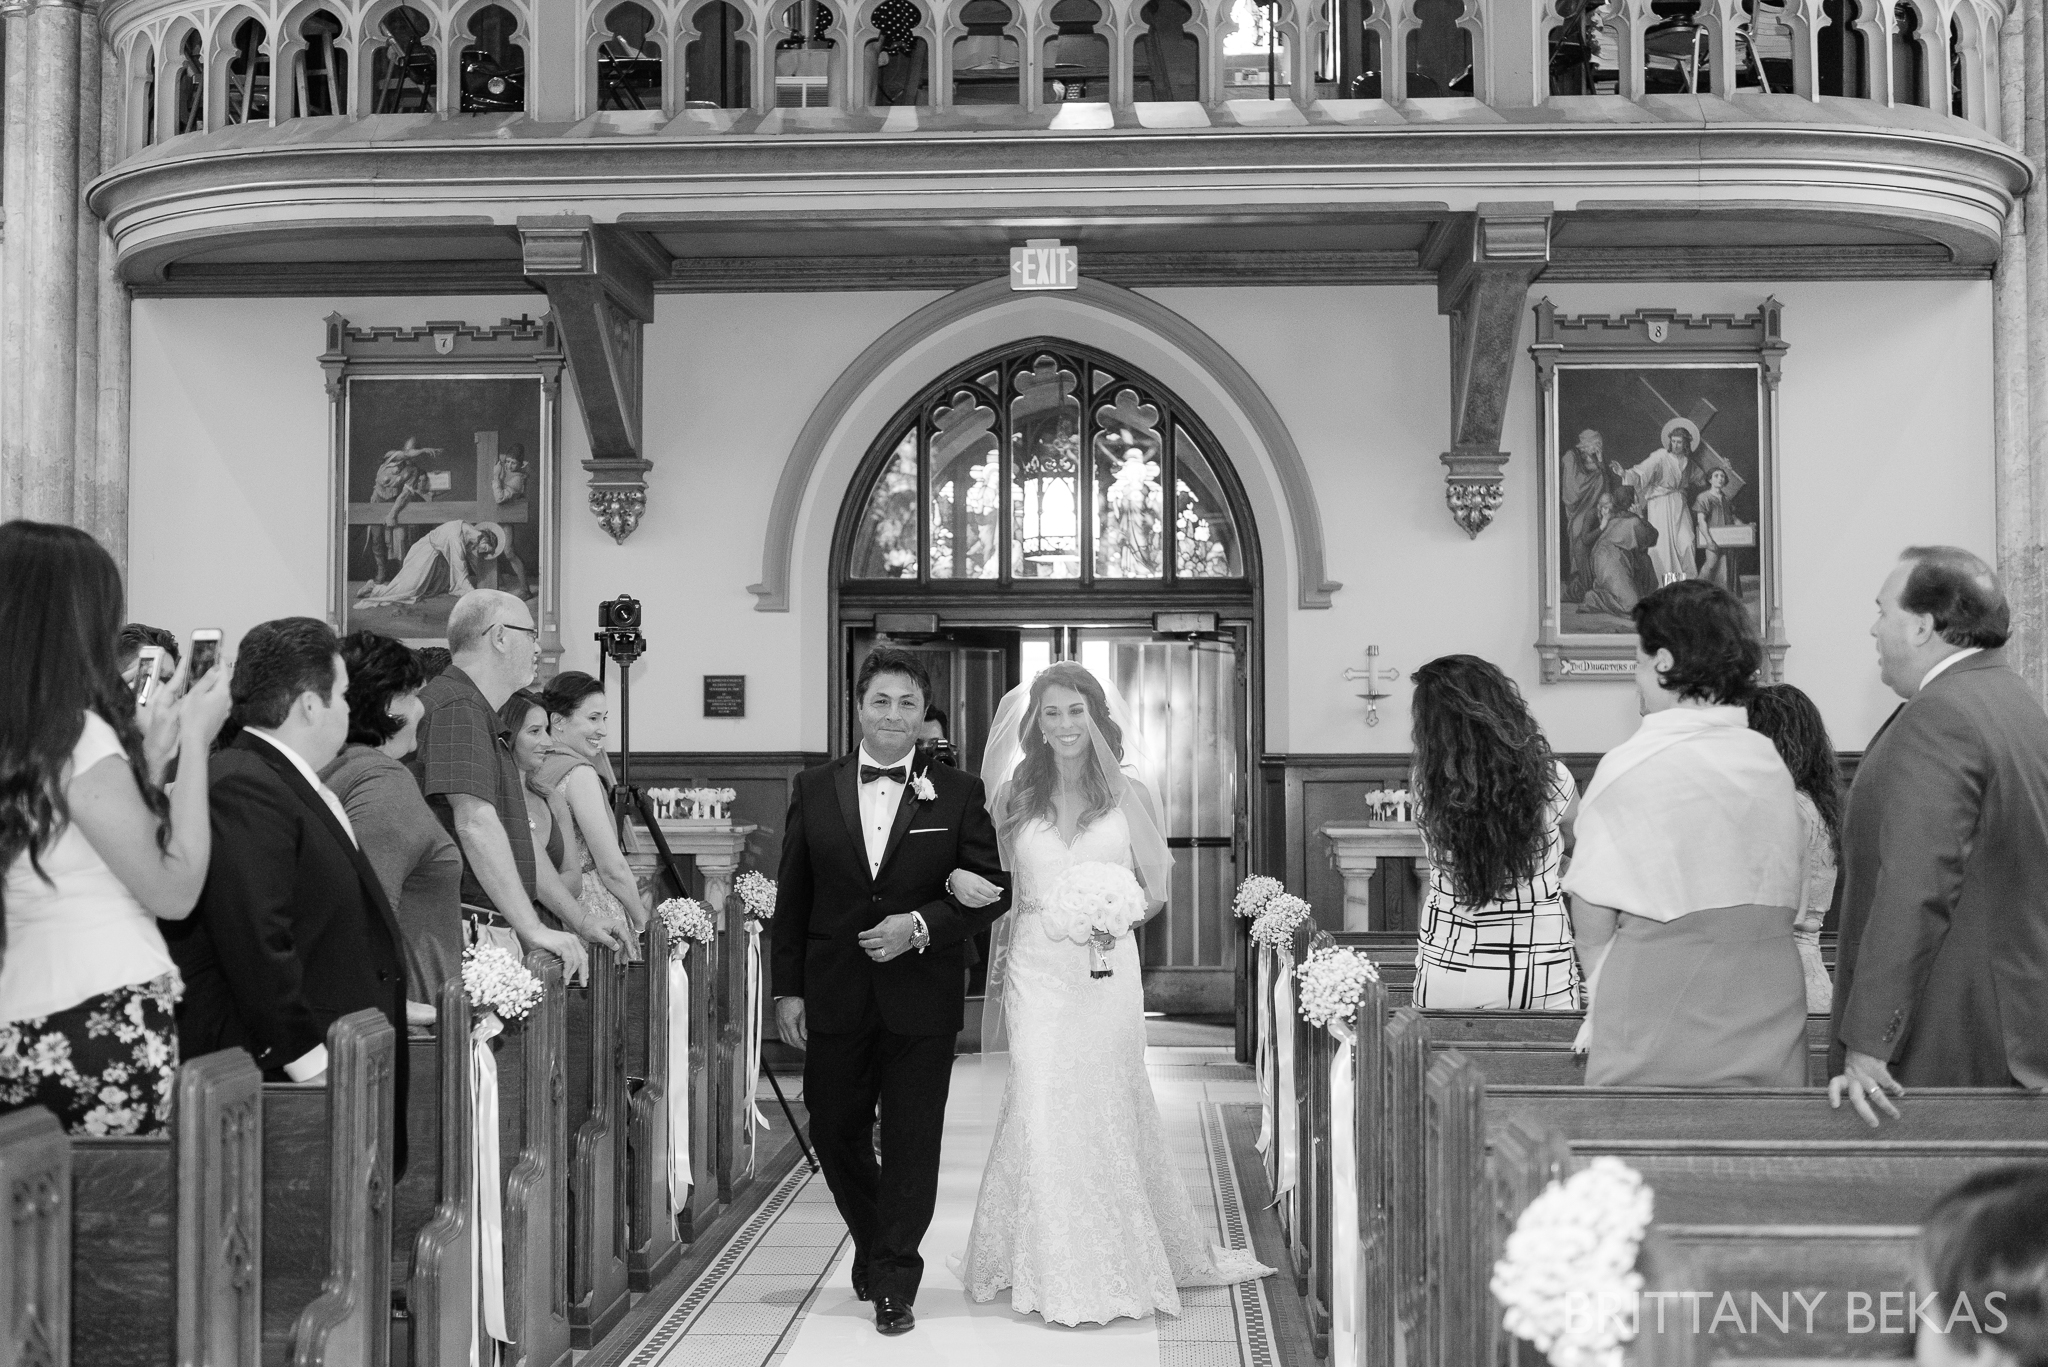 Chicago Wedding Photos St Edmunds + Concorde Banquets- Brittany Bekas Photography_0013